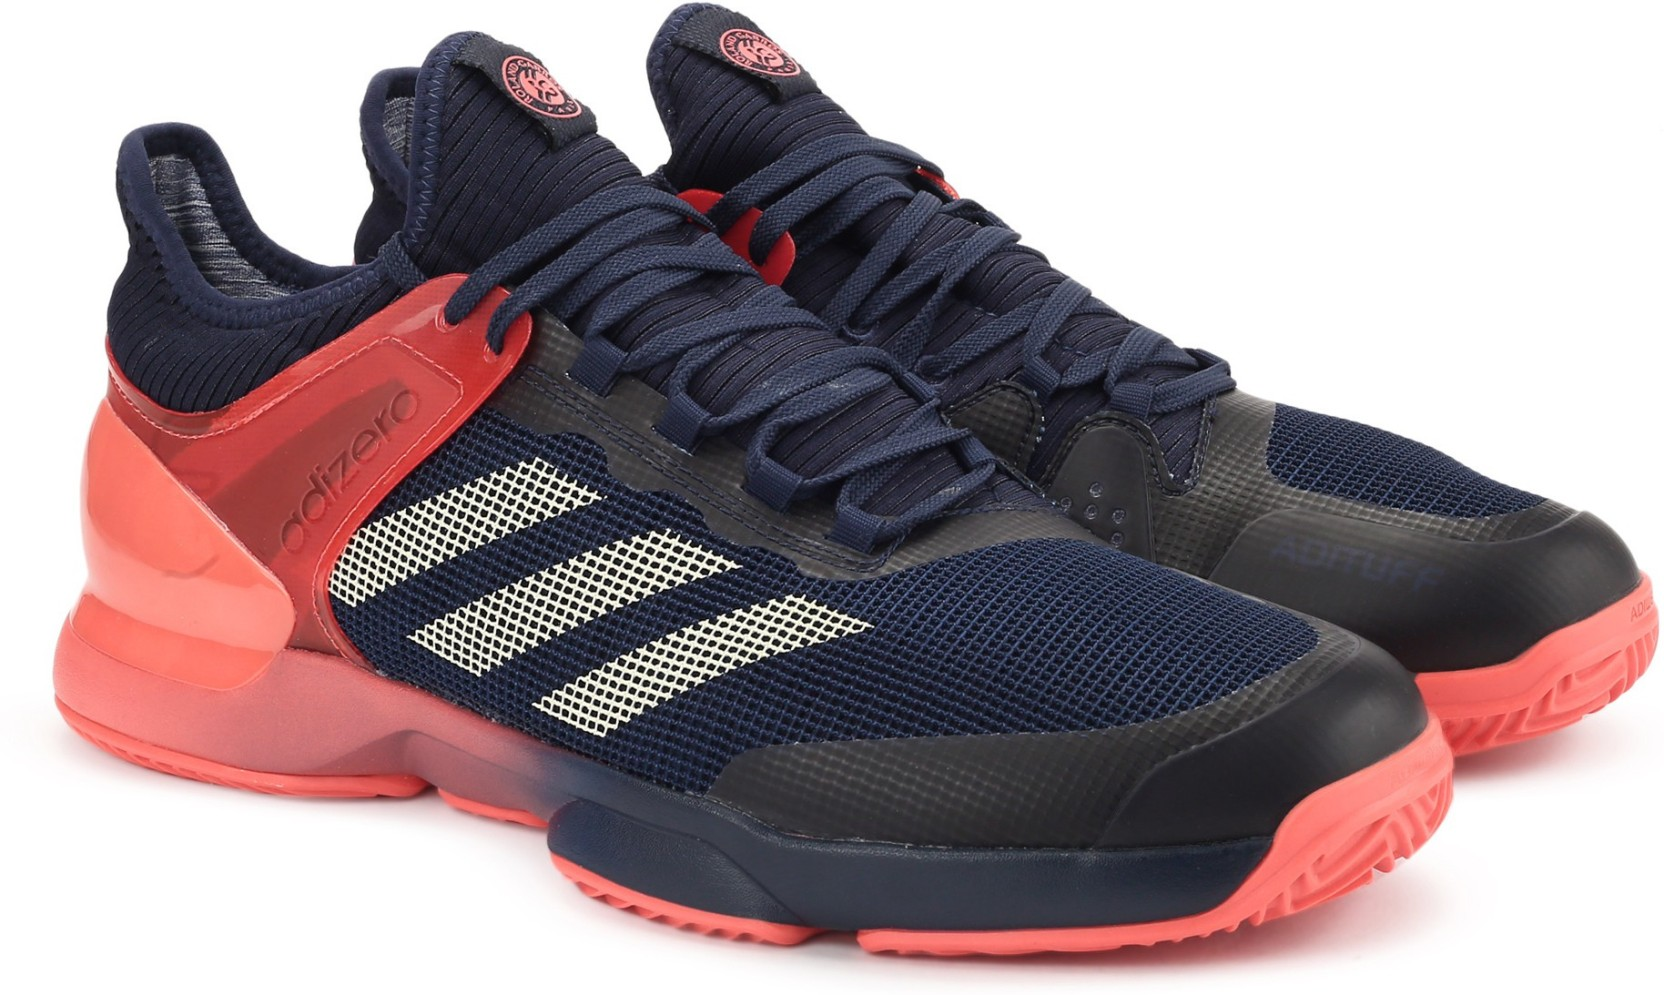 buy online e5a86 32239 ADIDAS ADIZERO UBERSONIC 2 CLAY Tennis Shoes For Men. Home